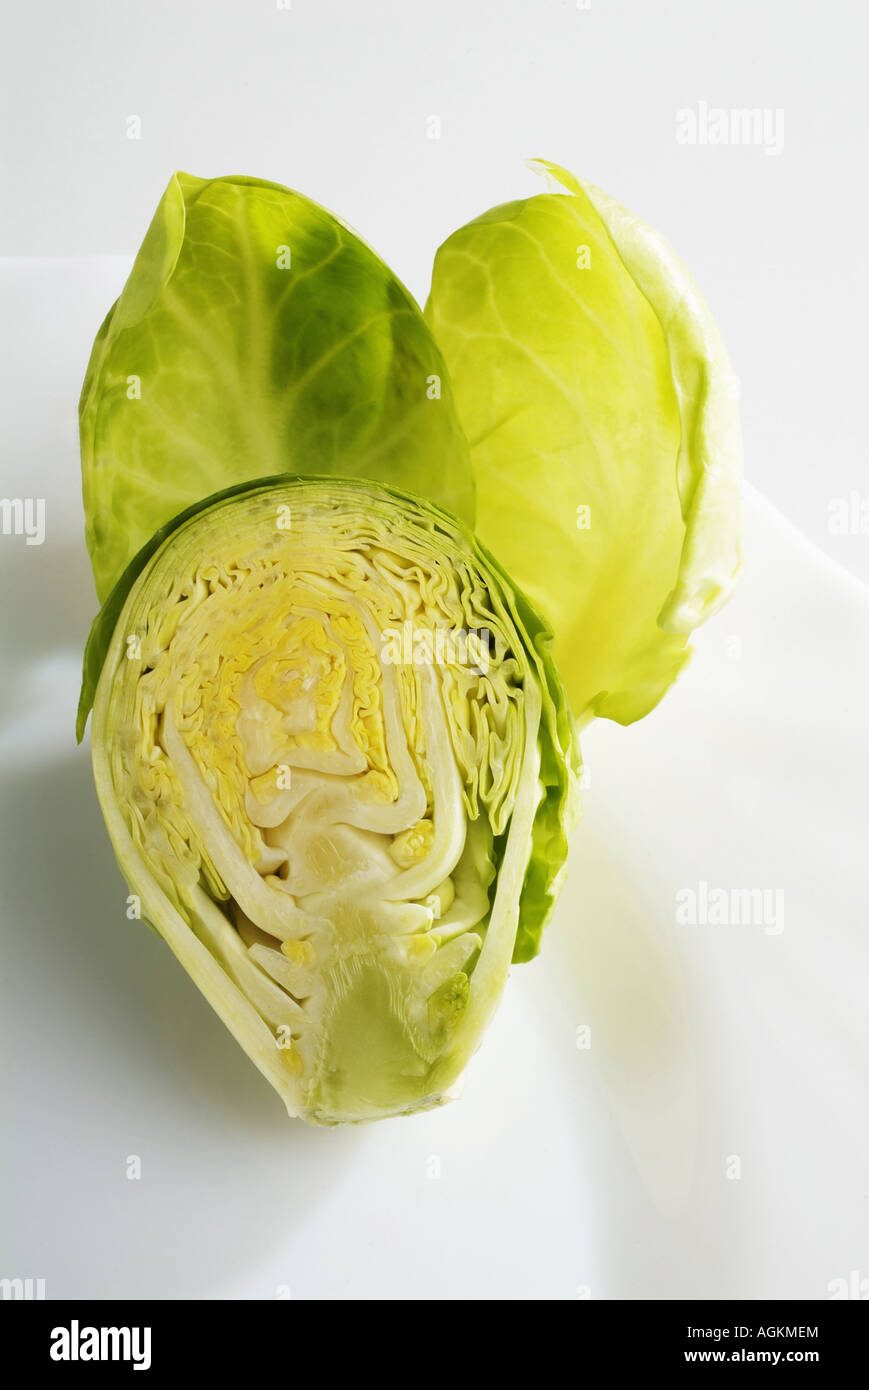 Painet jn0906 brussels cabbage isolate background broccoli brussel closeup cook cooking diet eat food fresh green - Stock Image